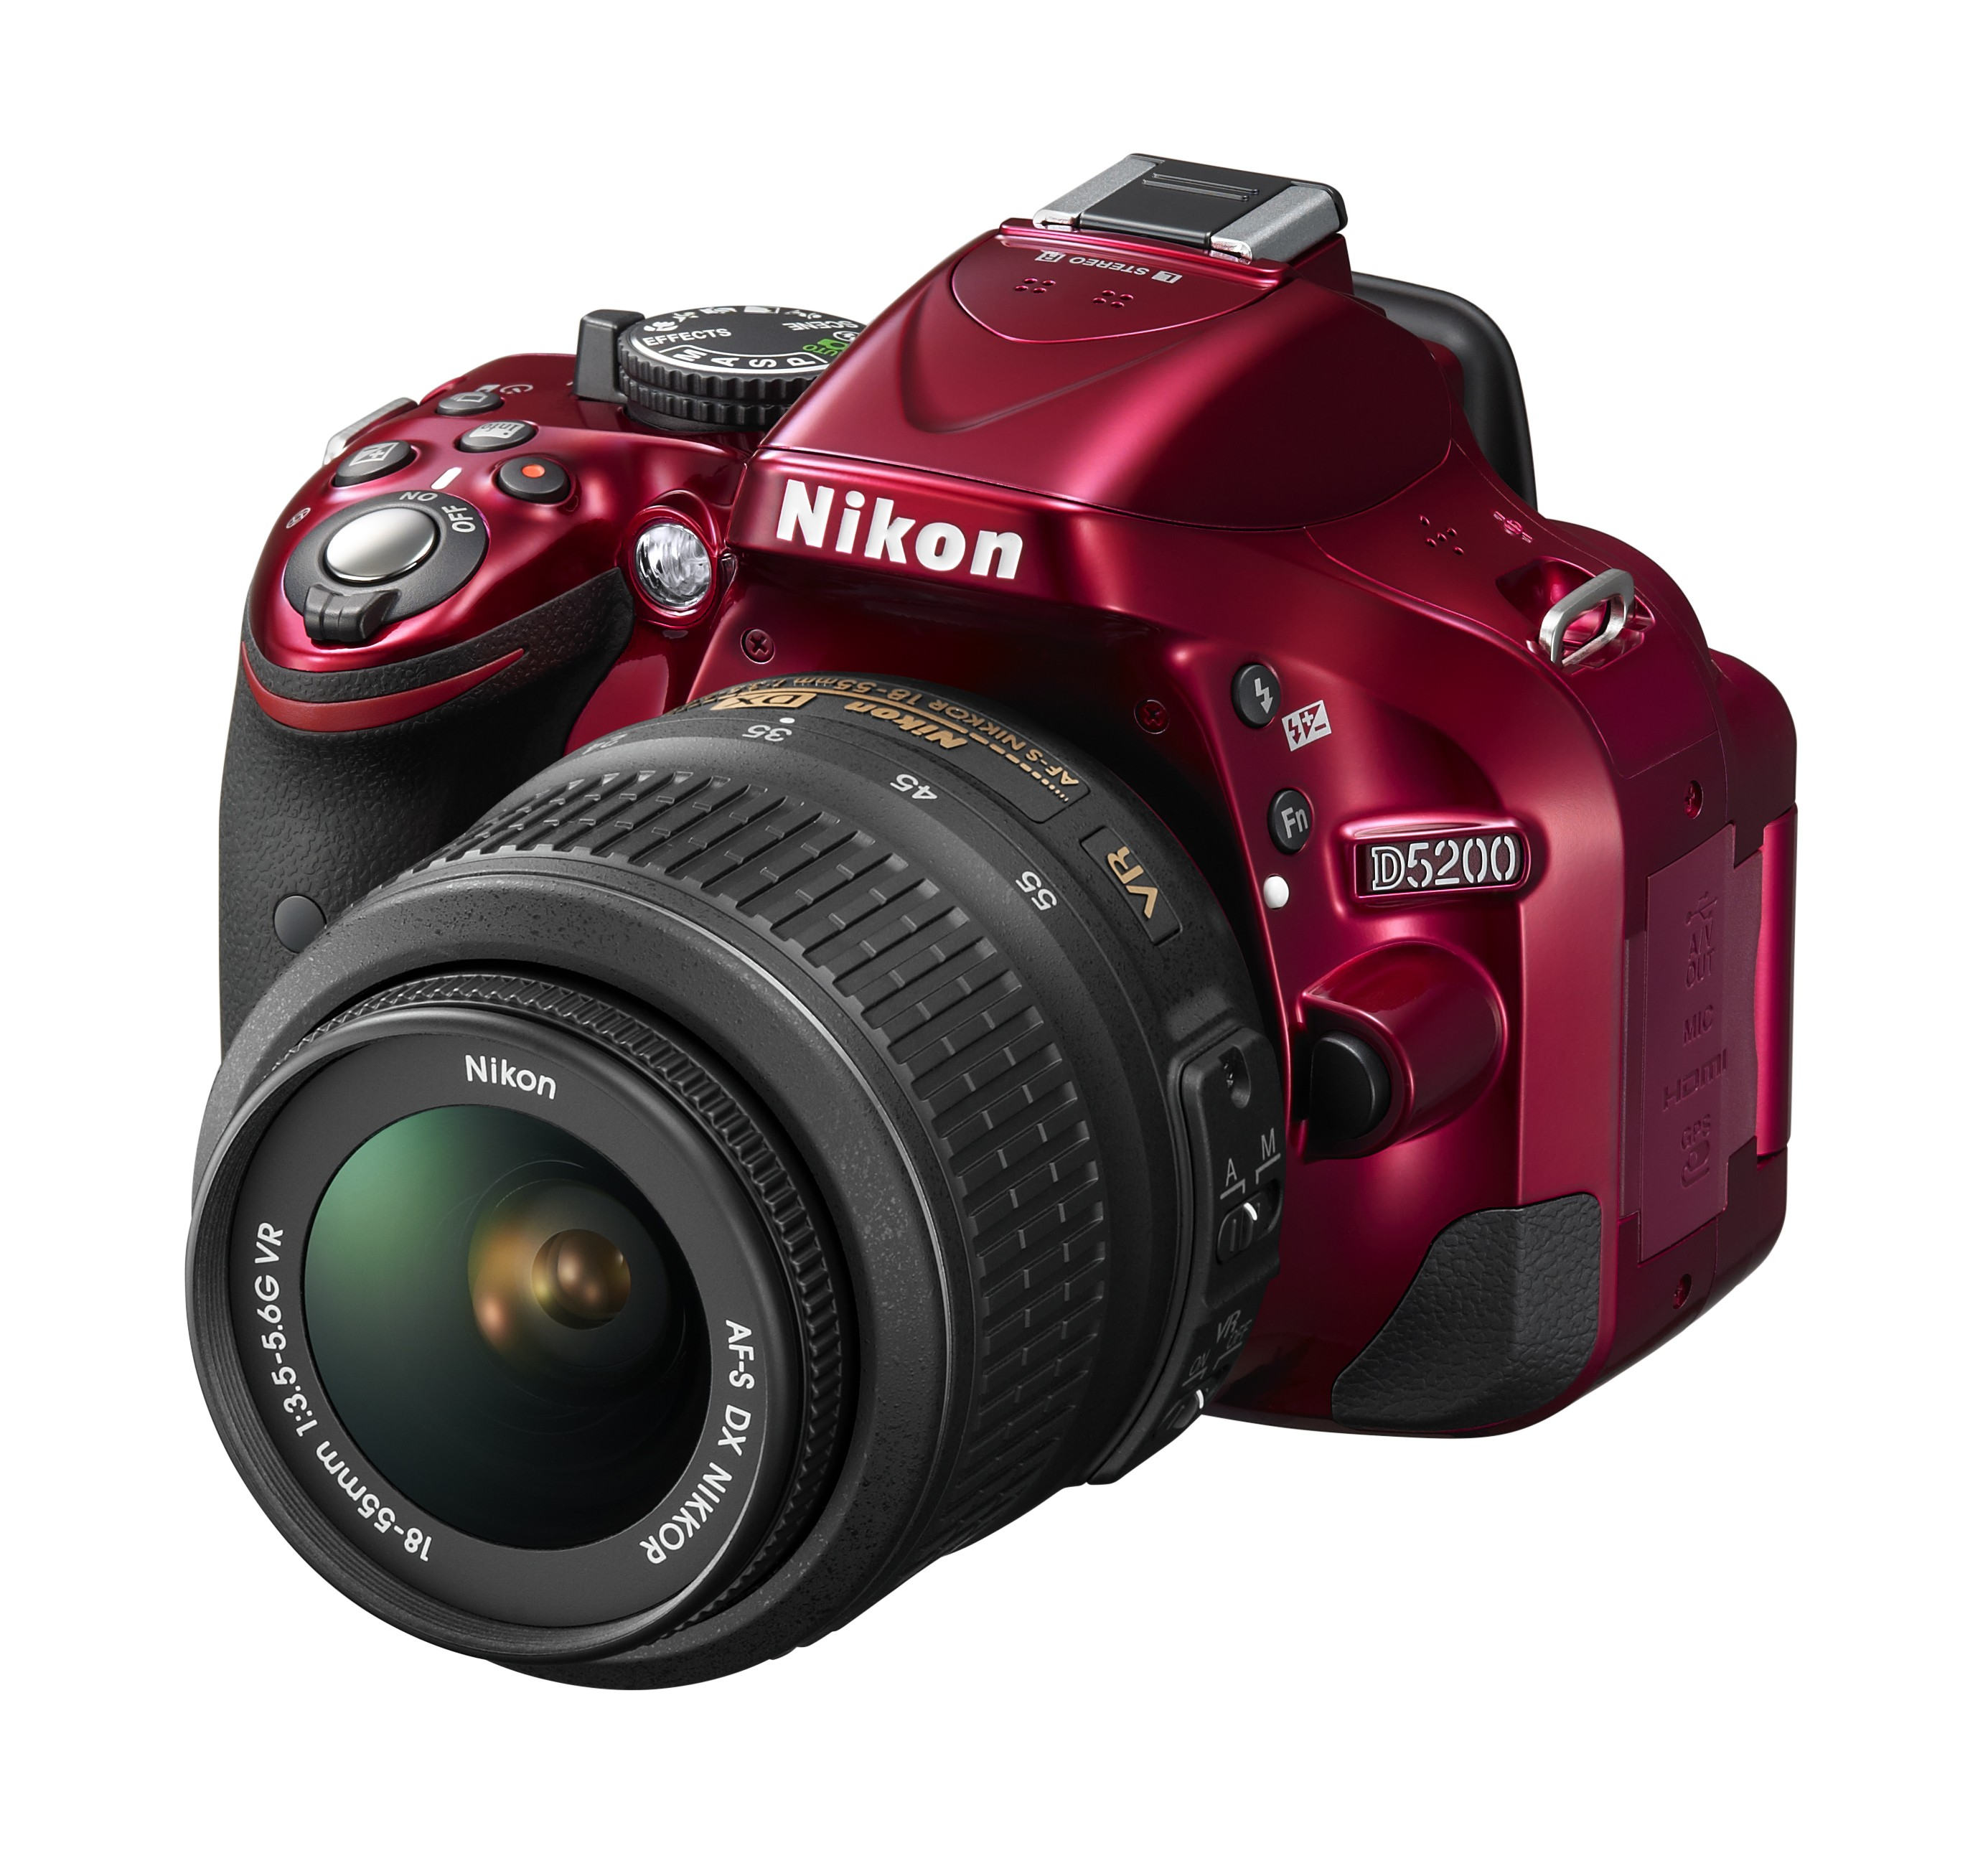 Nikon shows off new D5200 entry-level DSLR, and infra-red controllers